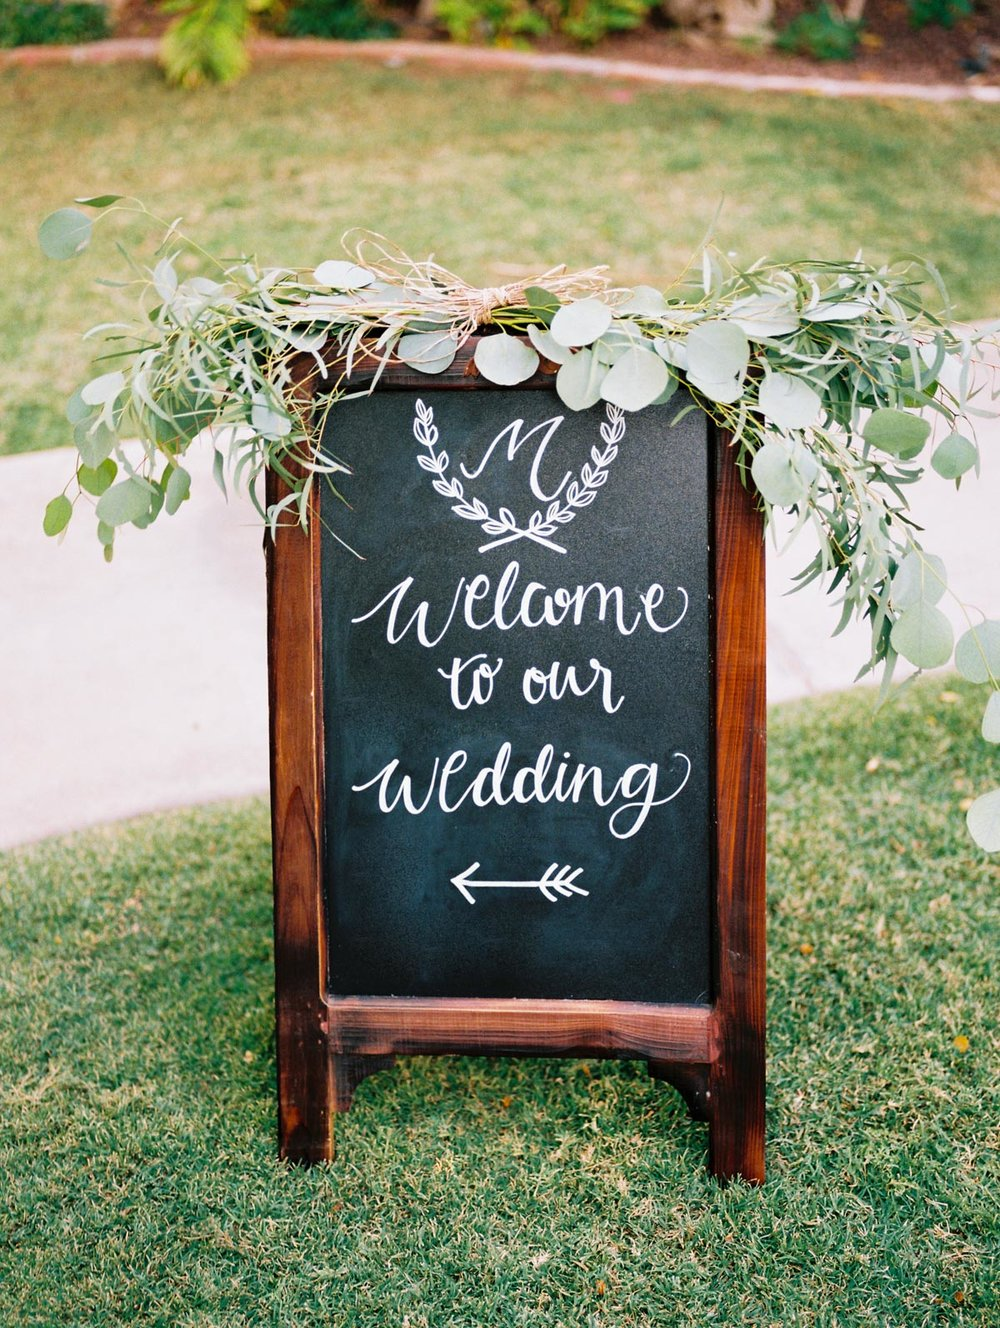 wedding-chalkboard-sign.jpg